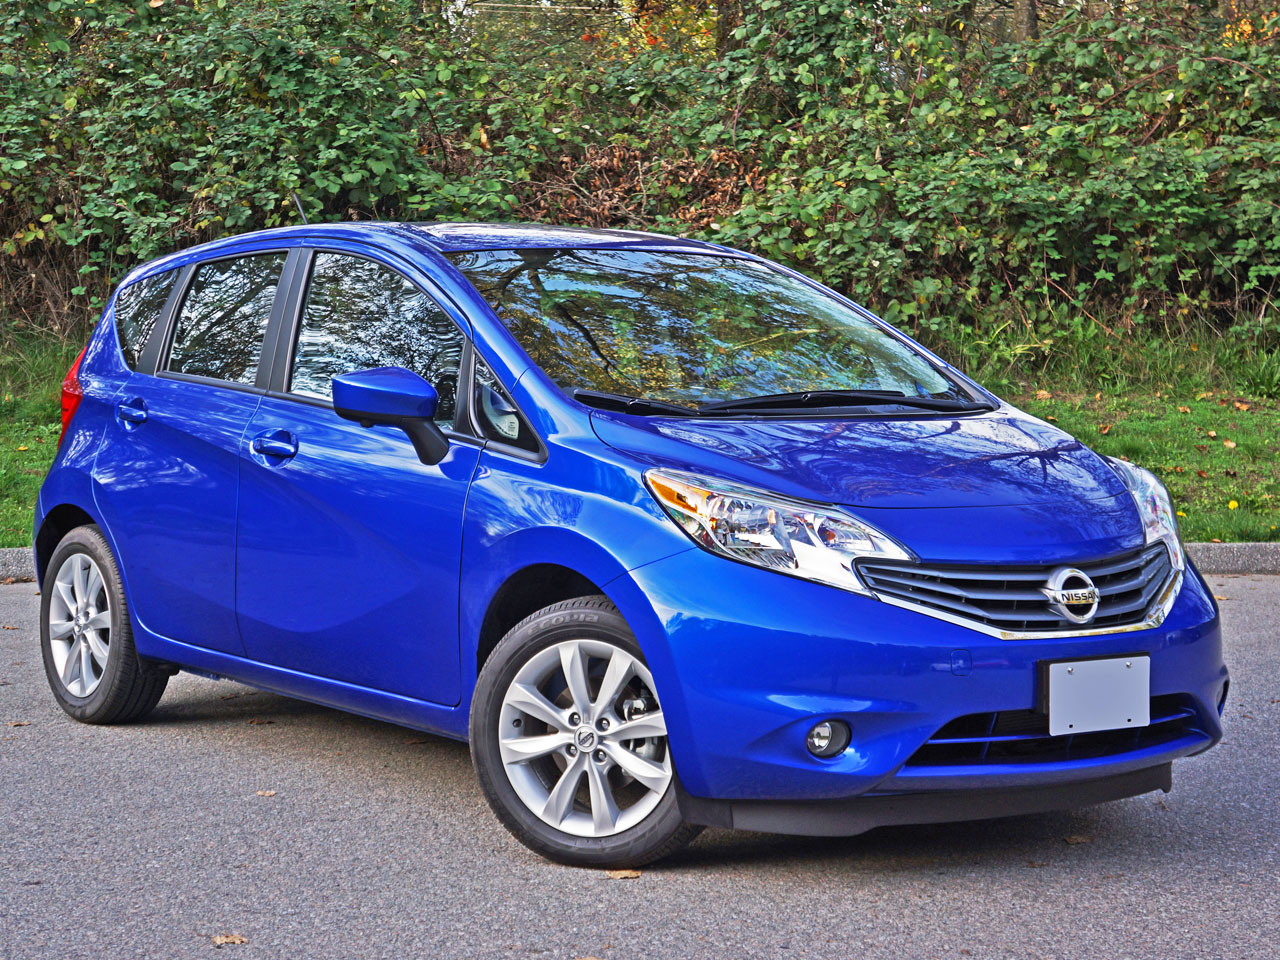 2016 nissan versa note sl road test review carcostcanada. Black Bedroom Furniture Sets. Home Design Ideas